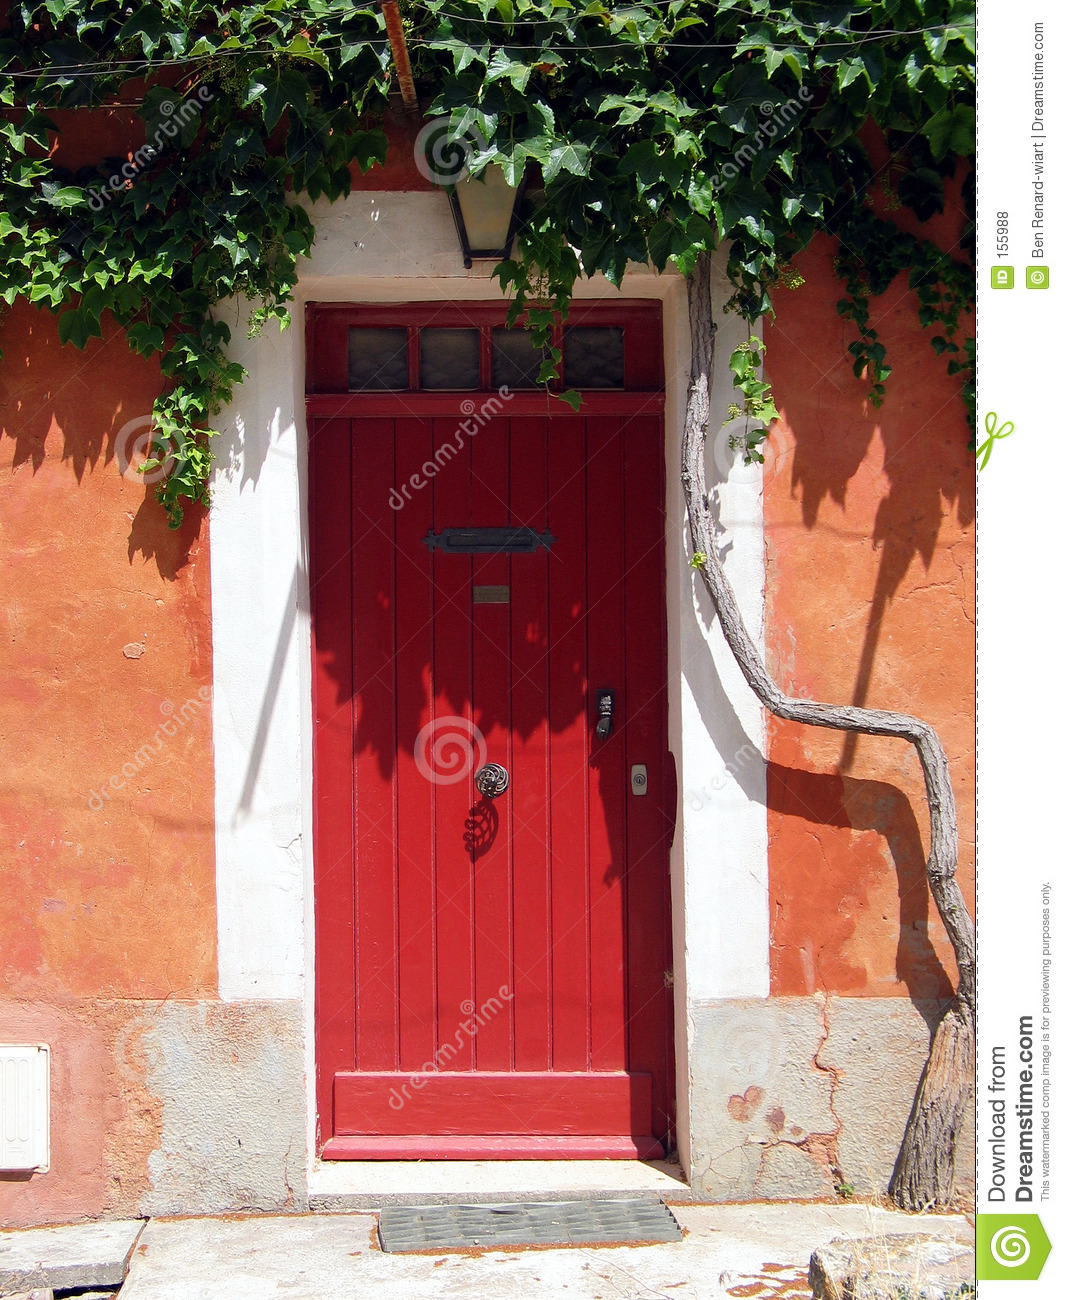 Red door in Tuscany. Italy